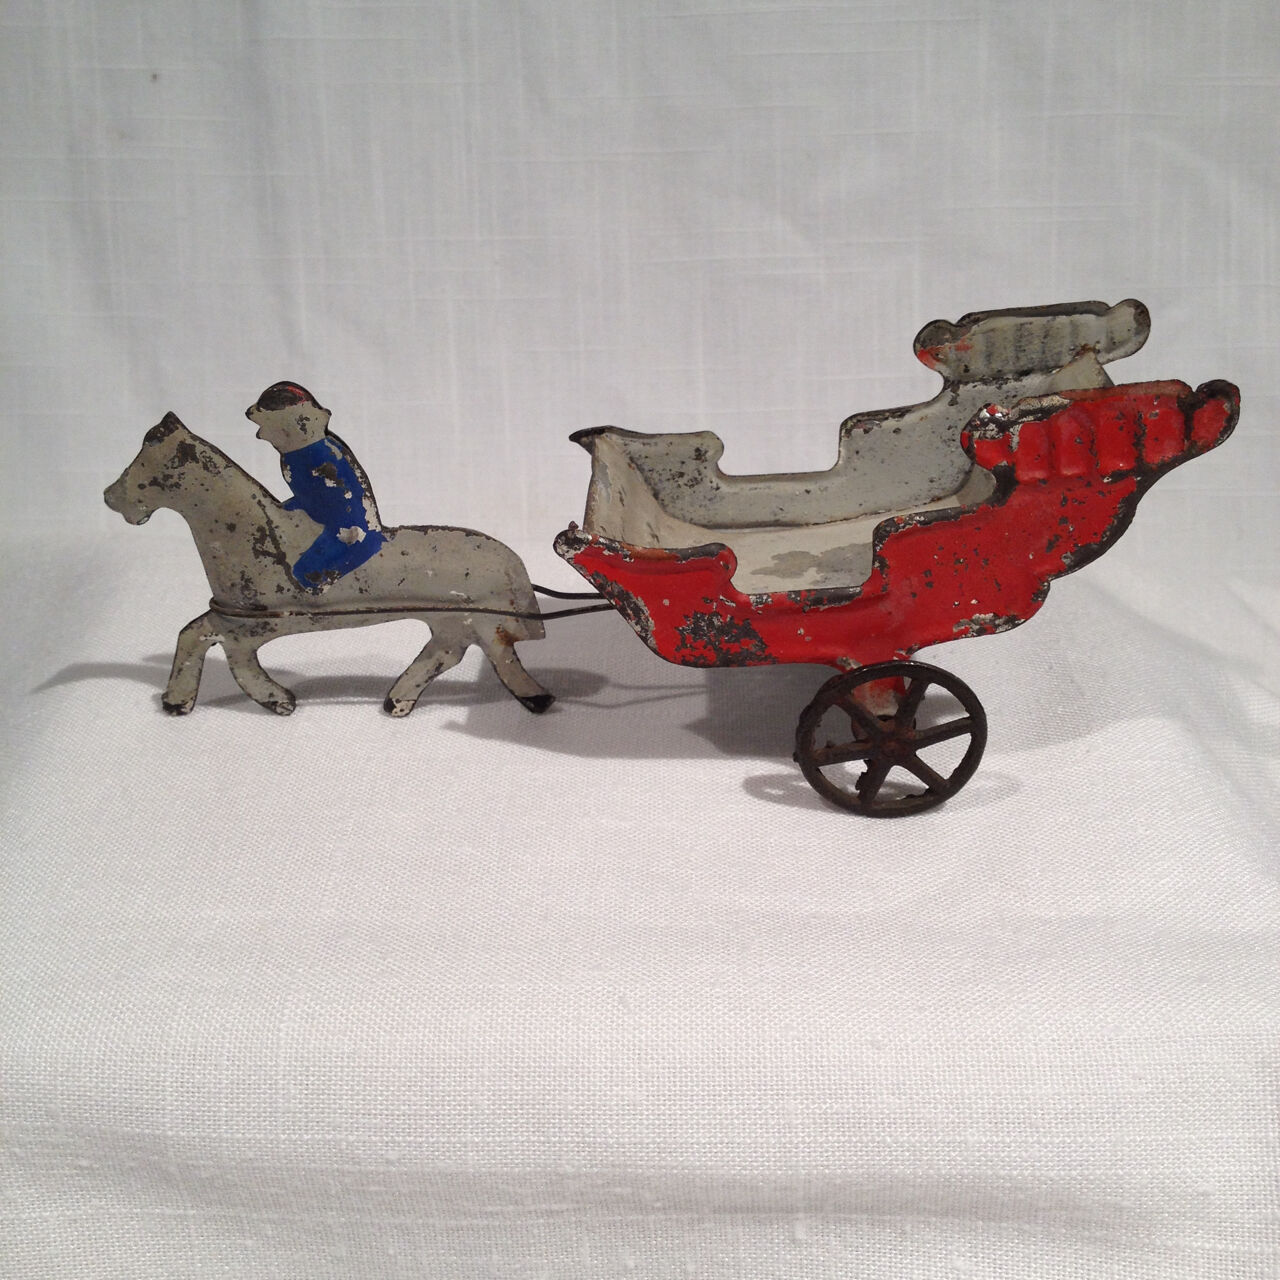 EARLY AMERICAN PAINTED TIN TOY CIRCUS WAGON, HORSE & RIDER, FALLOWS, 6.25 INCHES